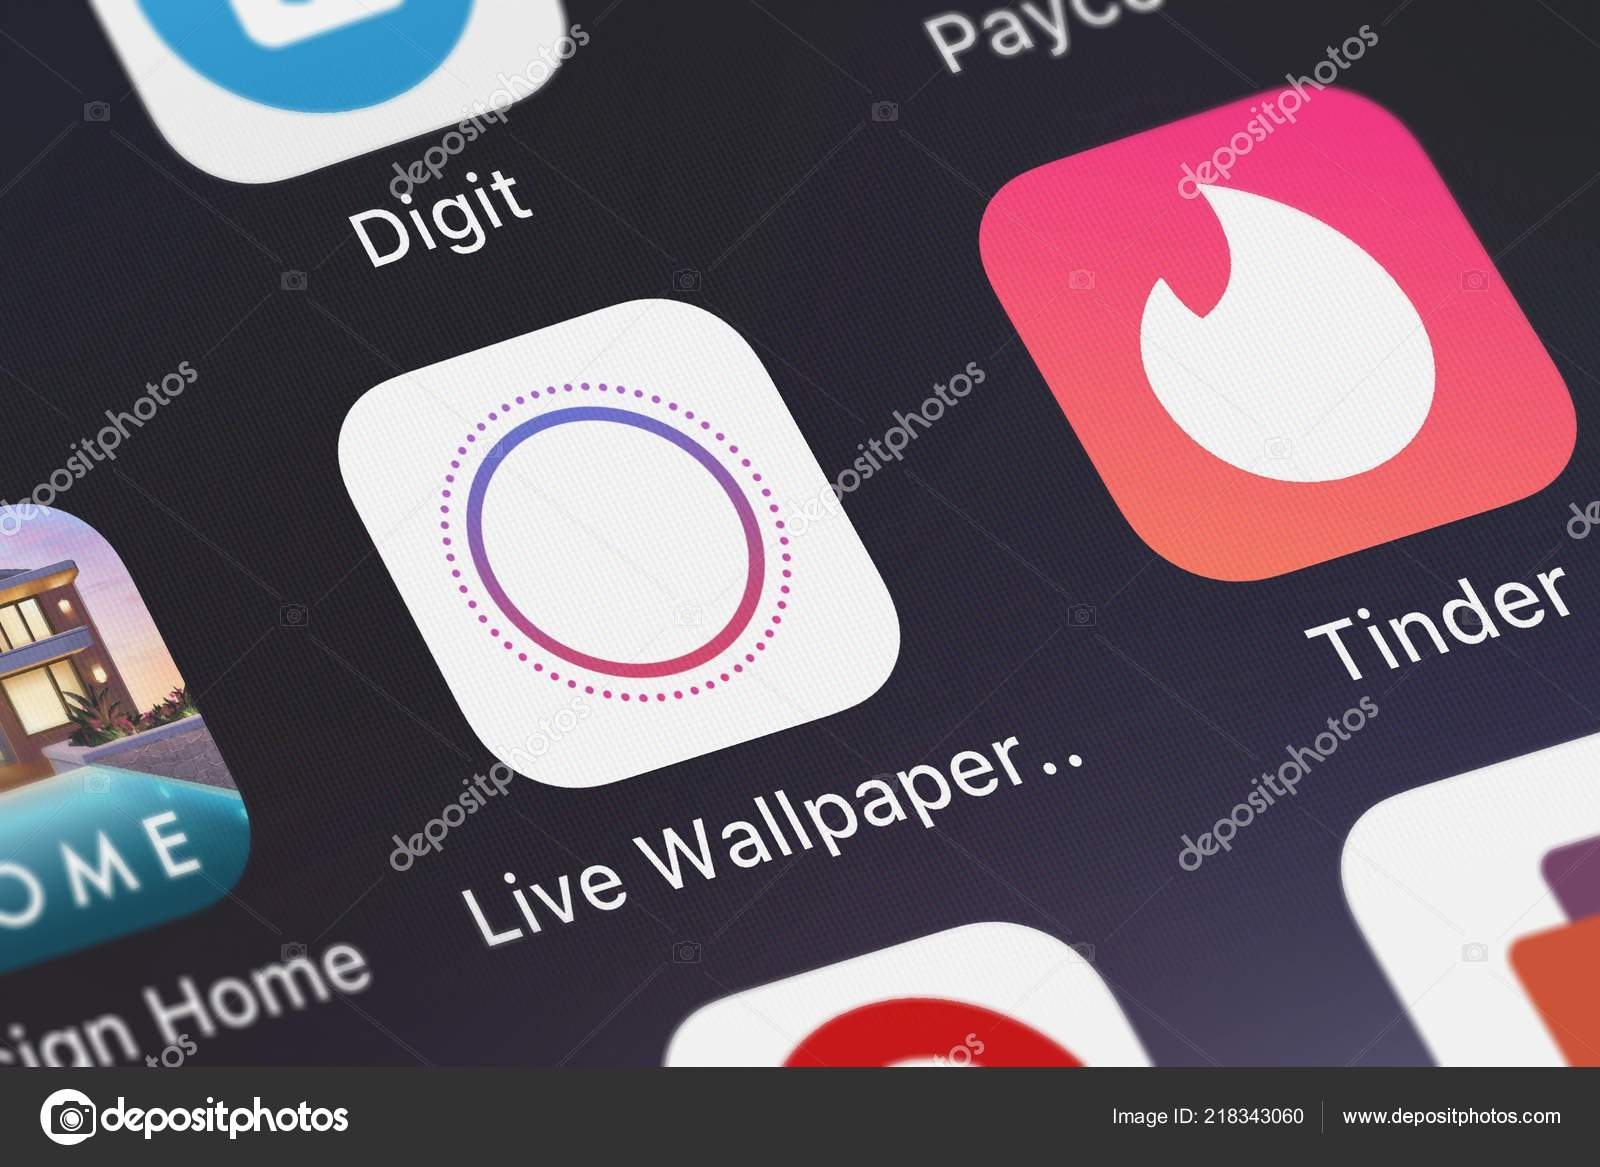 London, United Kingdom - October 01, 2018: The Live Wallpapers for iPhone 6s - Free Animated Themes and Custom Dynamic Backgrounds mobile app from Daud ...